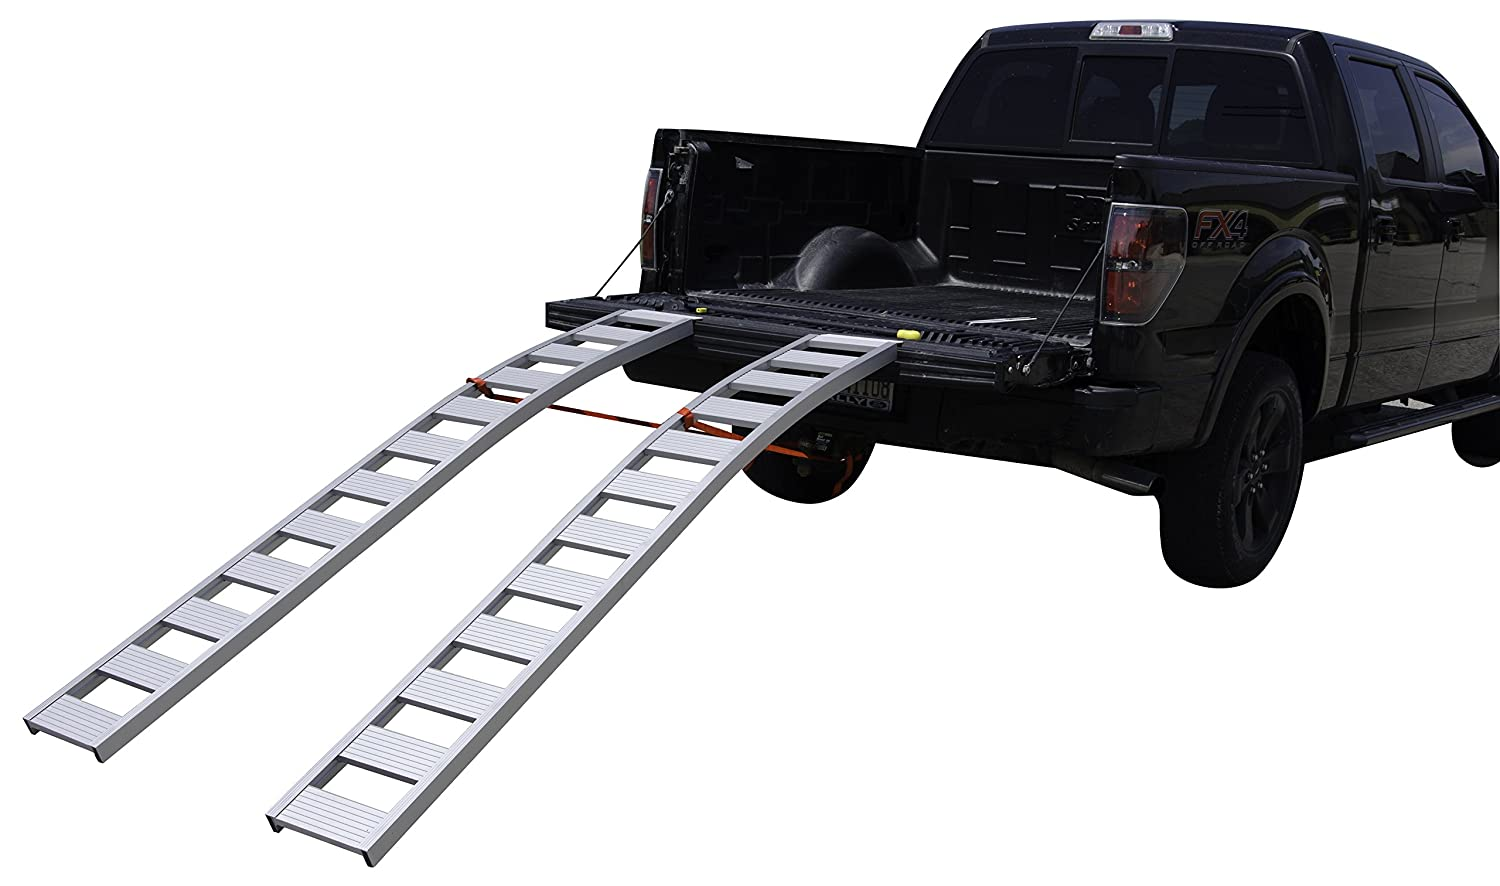 Erickson 07451 Silver 90 Long Load Securing Equipment 2 Pack